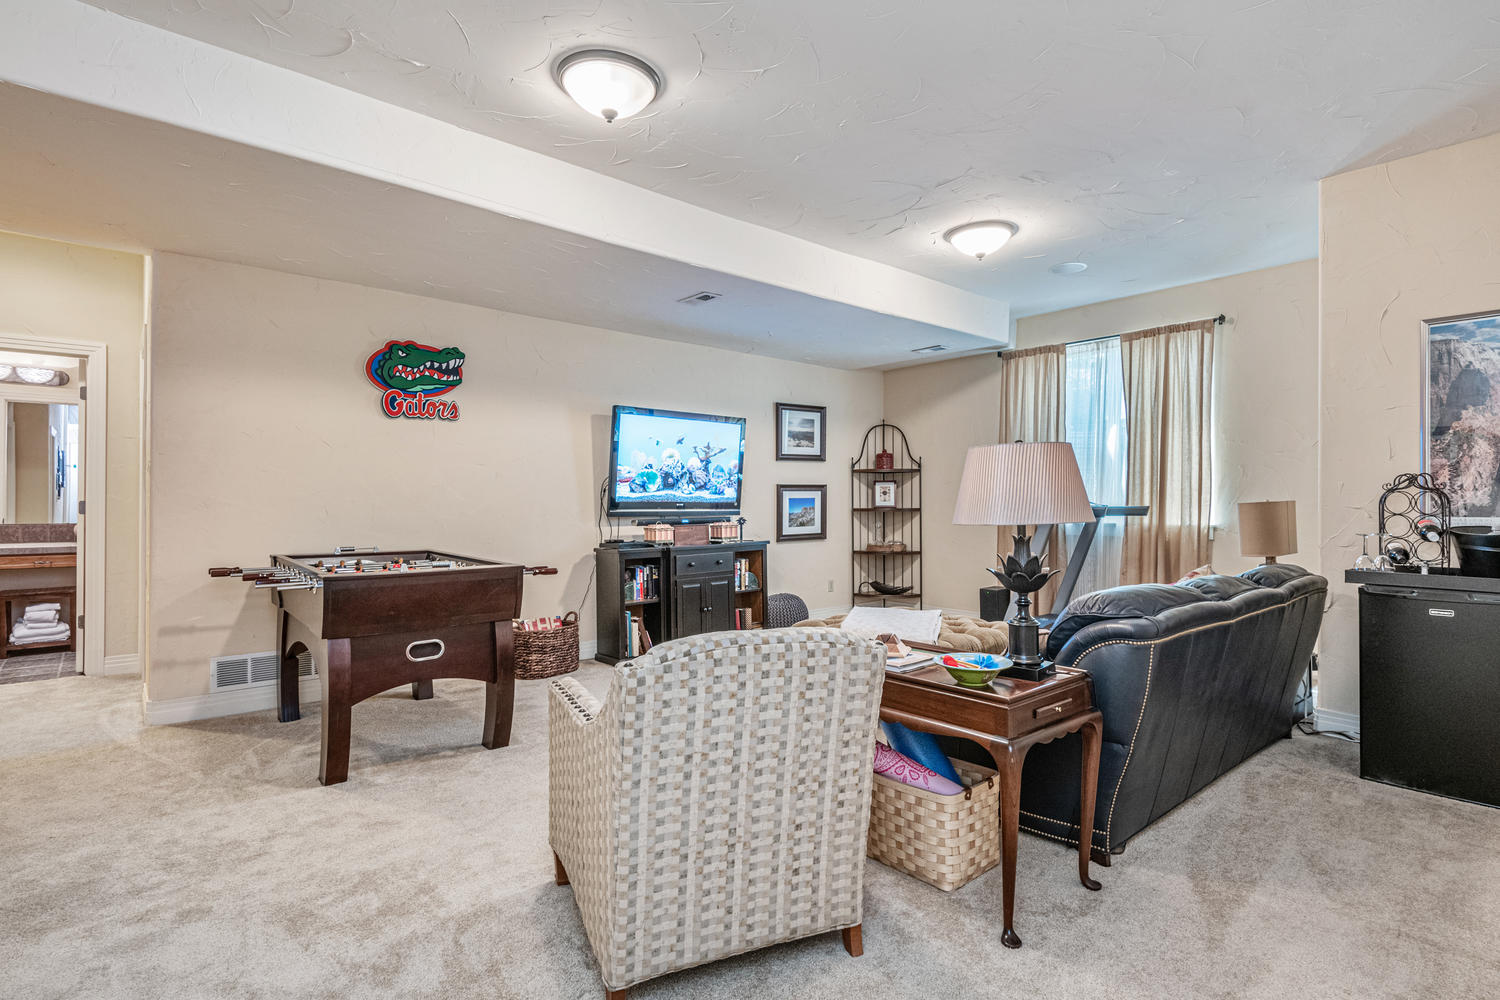 Great Recreation Room Adds to Living Space